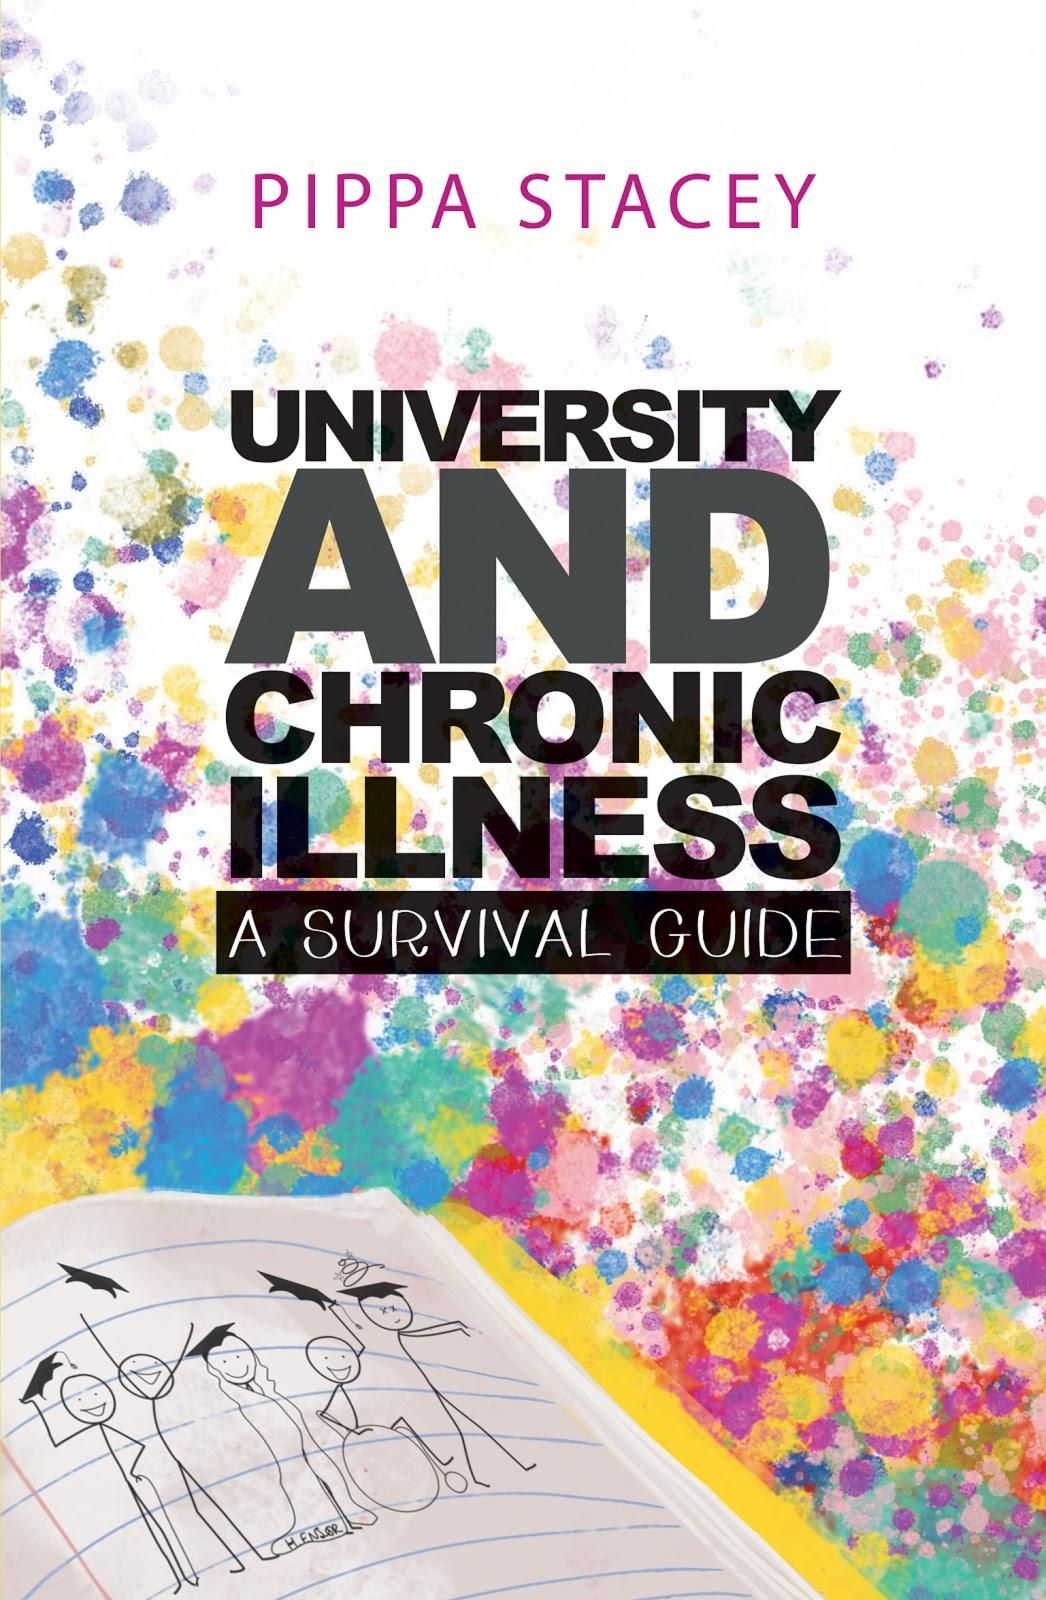 Cover of the book titled University and Chronic Illness: A Survival Guide